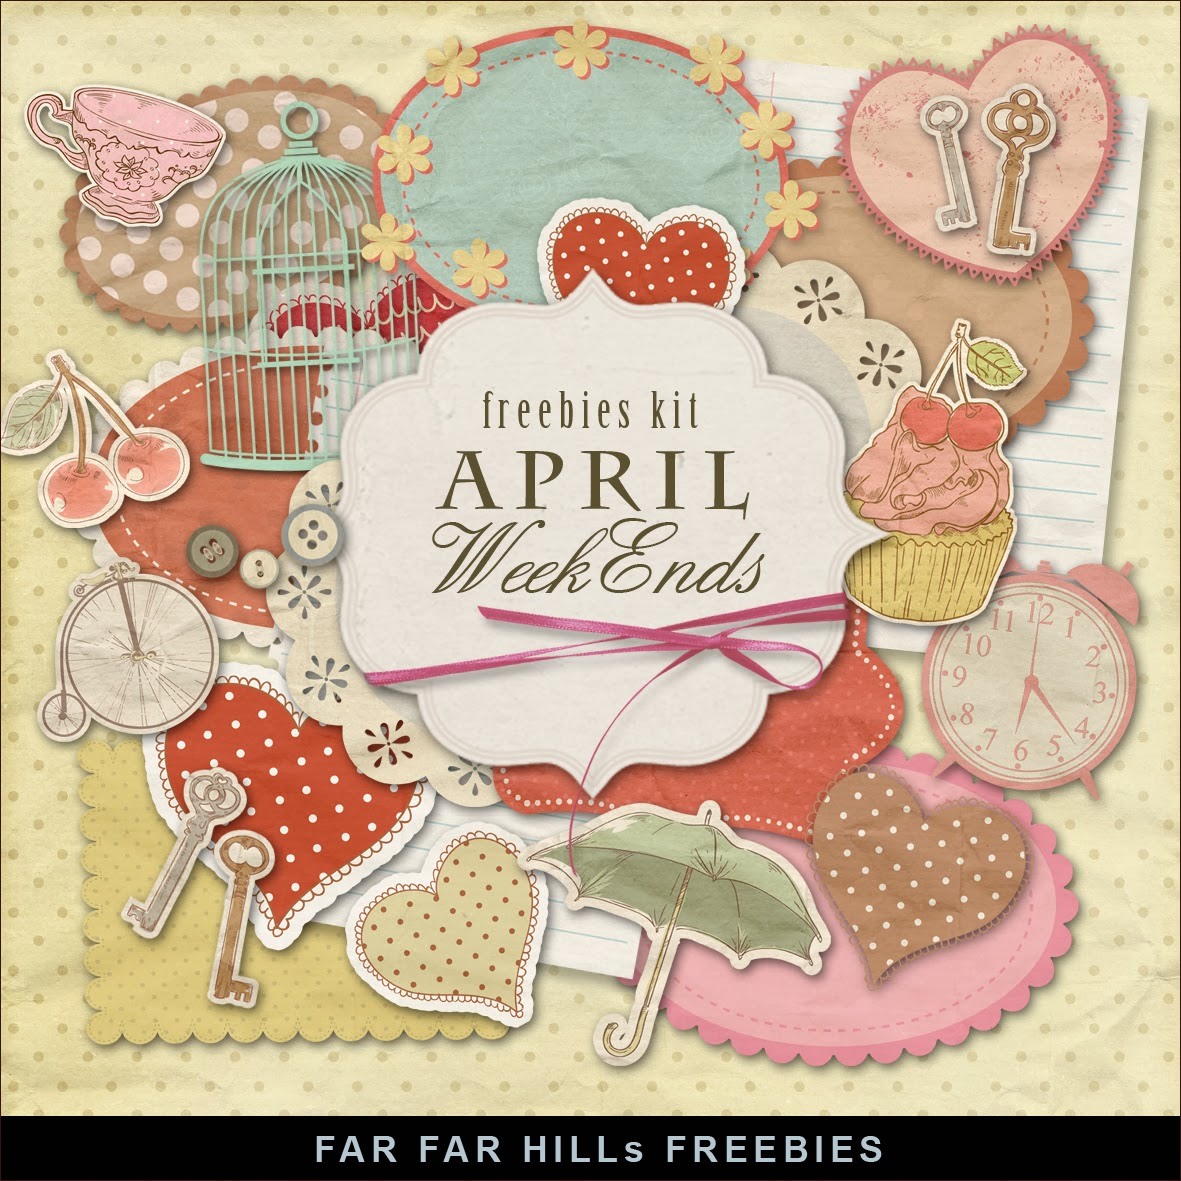 new freebies kit of labels april weekend far far hill free database of digital illustrations. Black Bedroom Furniture Sets. Home Design Ideas